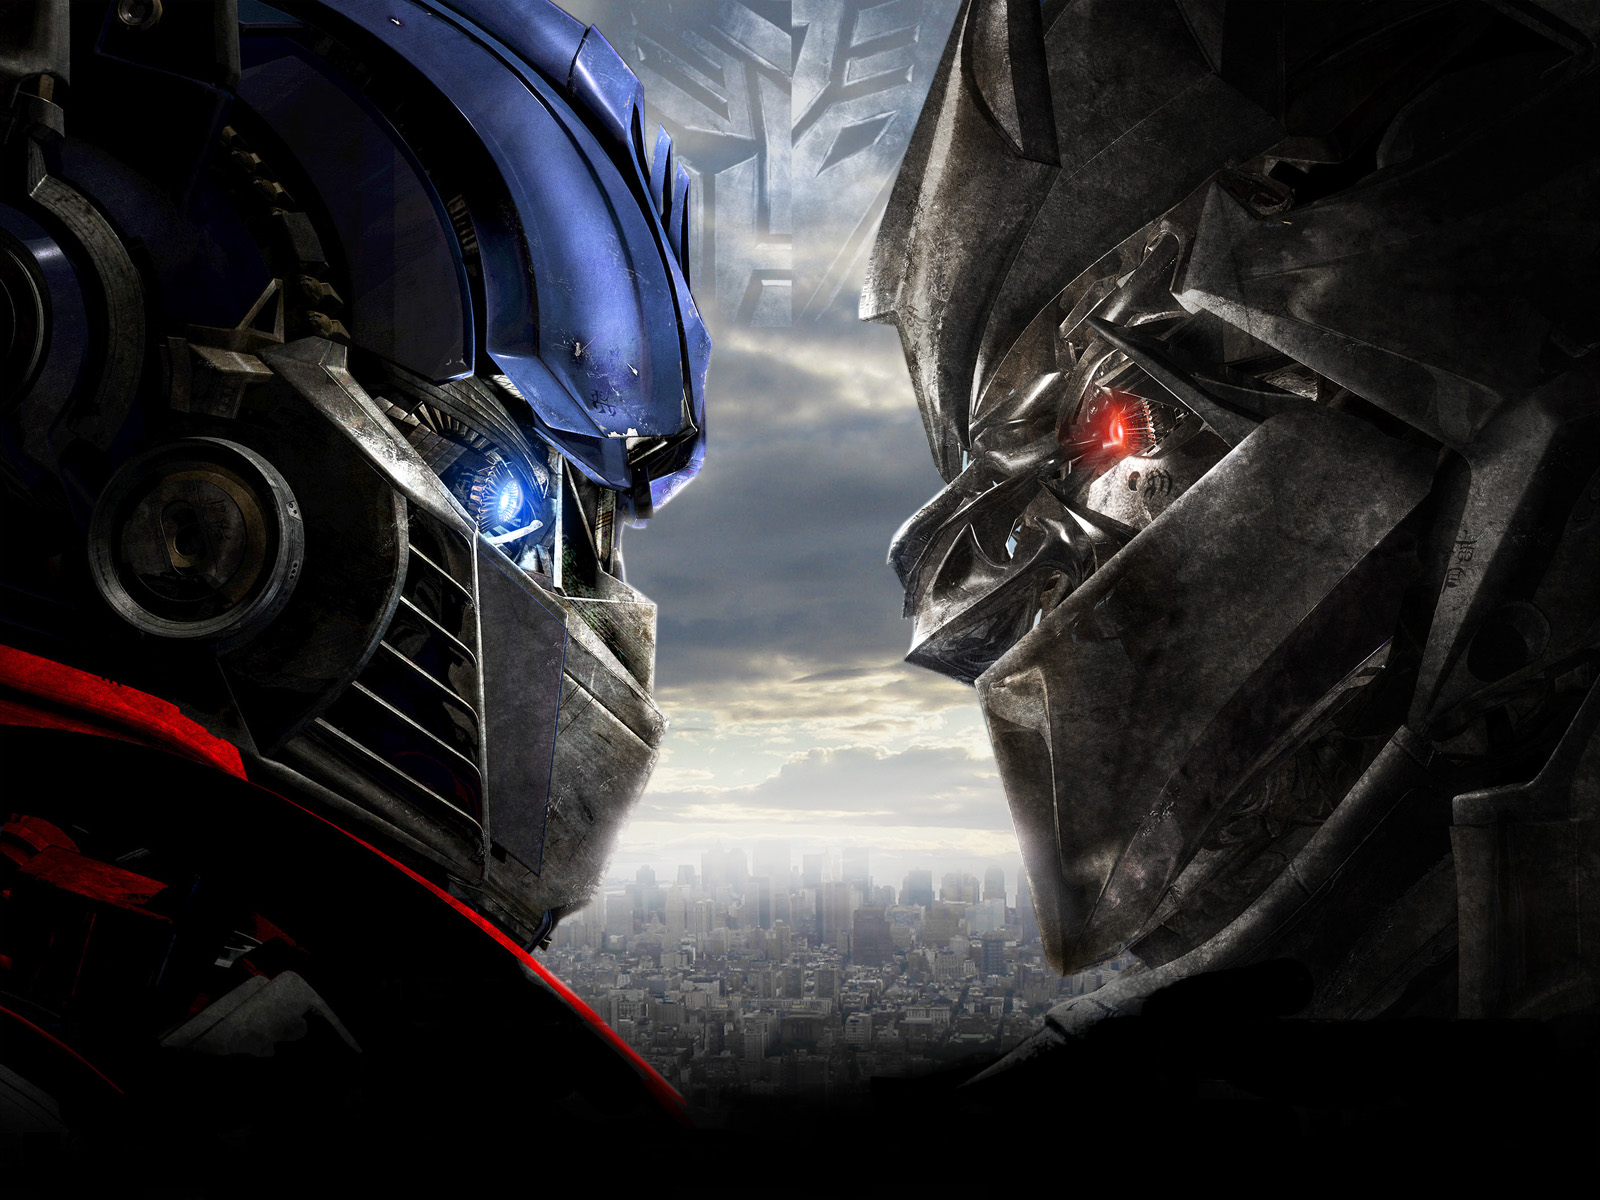 153 transformers hd wallpapers | background images - wallpaper abyss